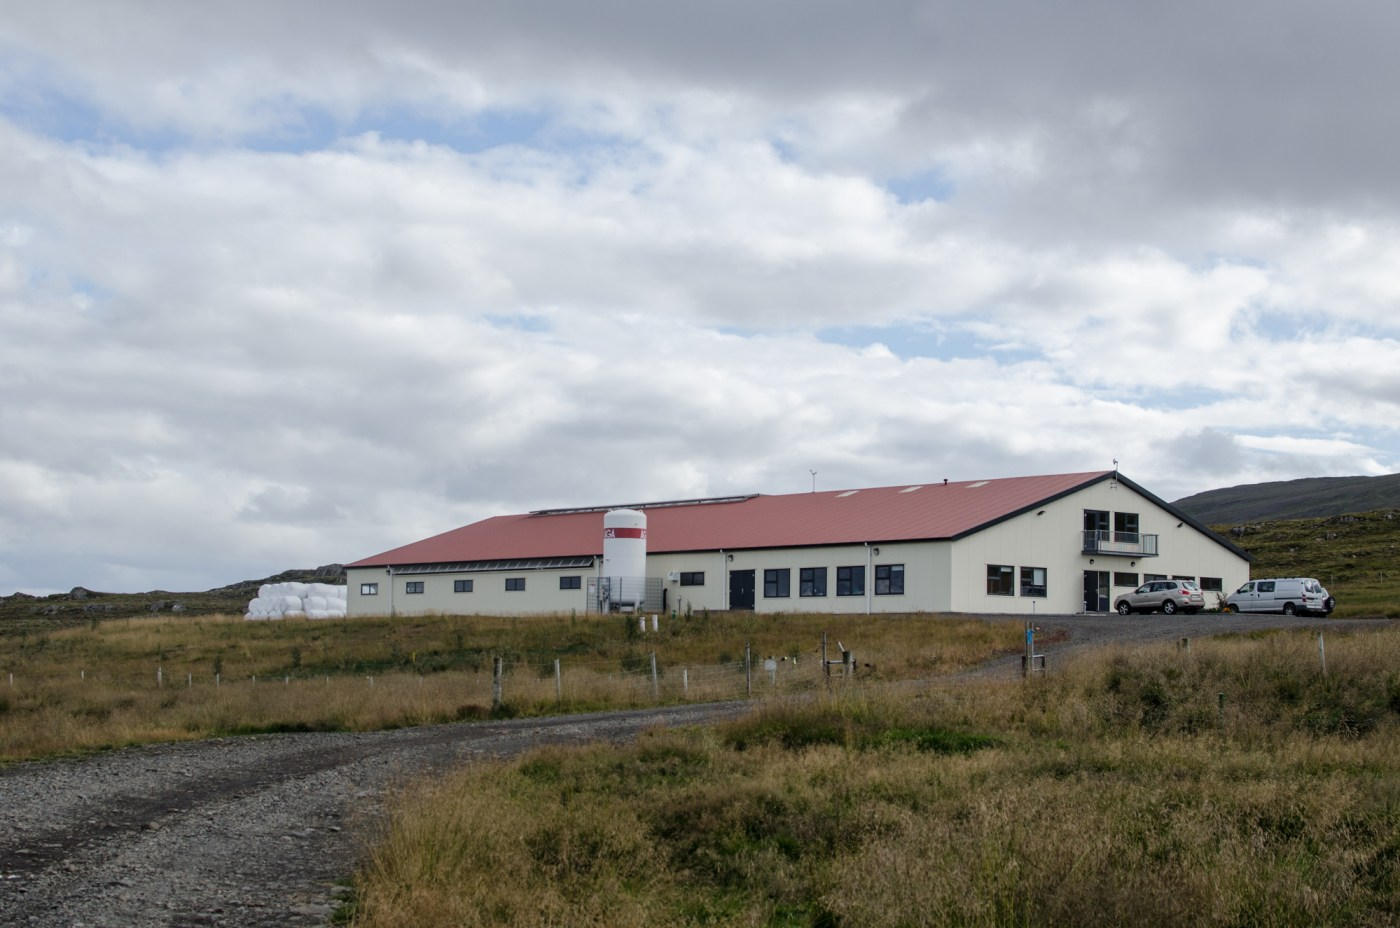 Visiting Icelandic Bull Station by Independent People